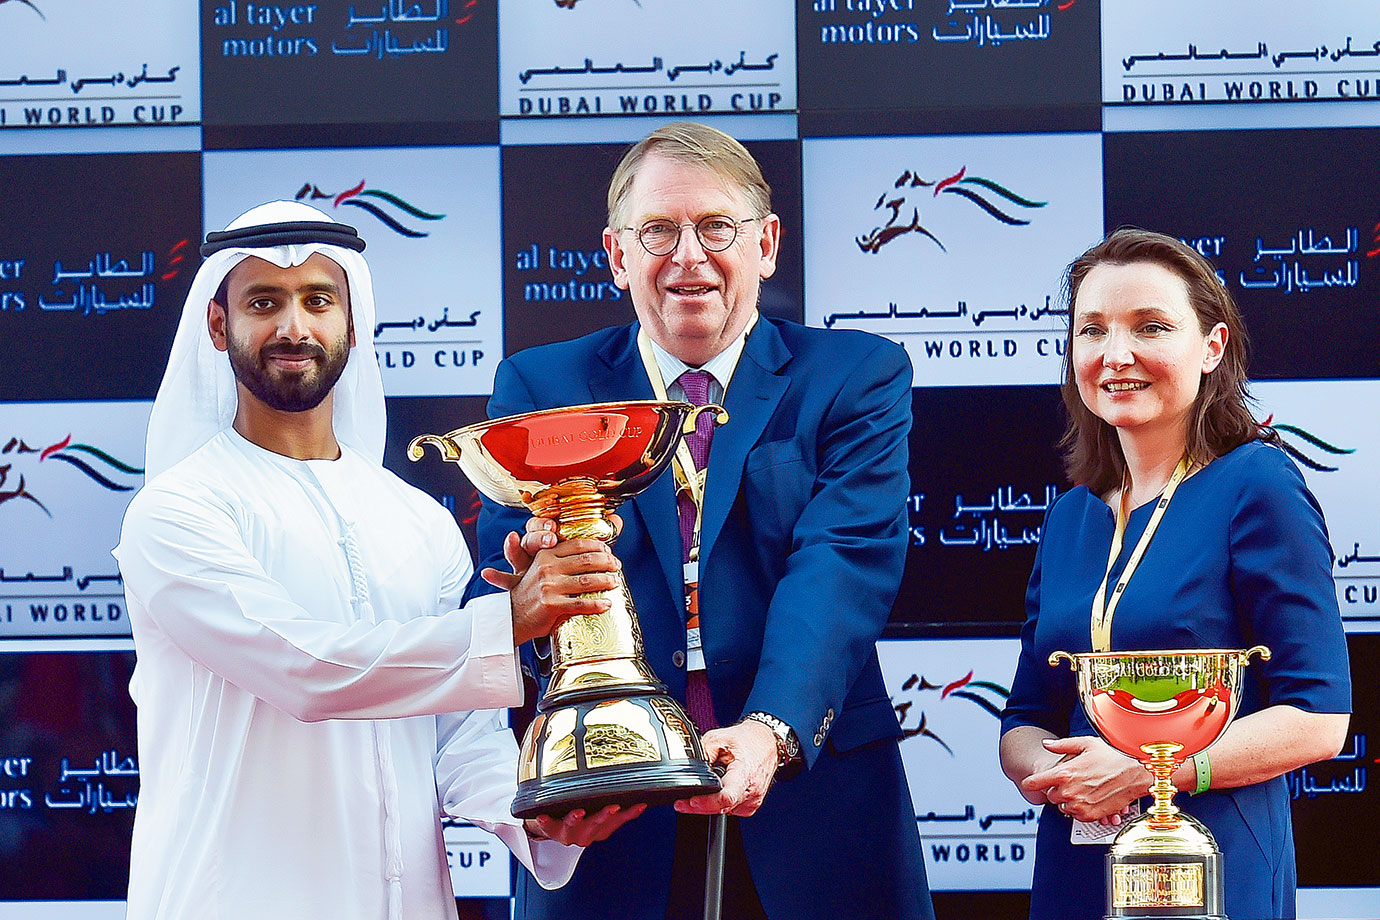 Humaid Ahmad Al Tayer hands over the trophy to Georges Rimaud